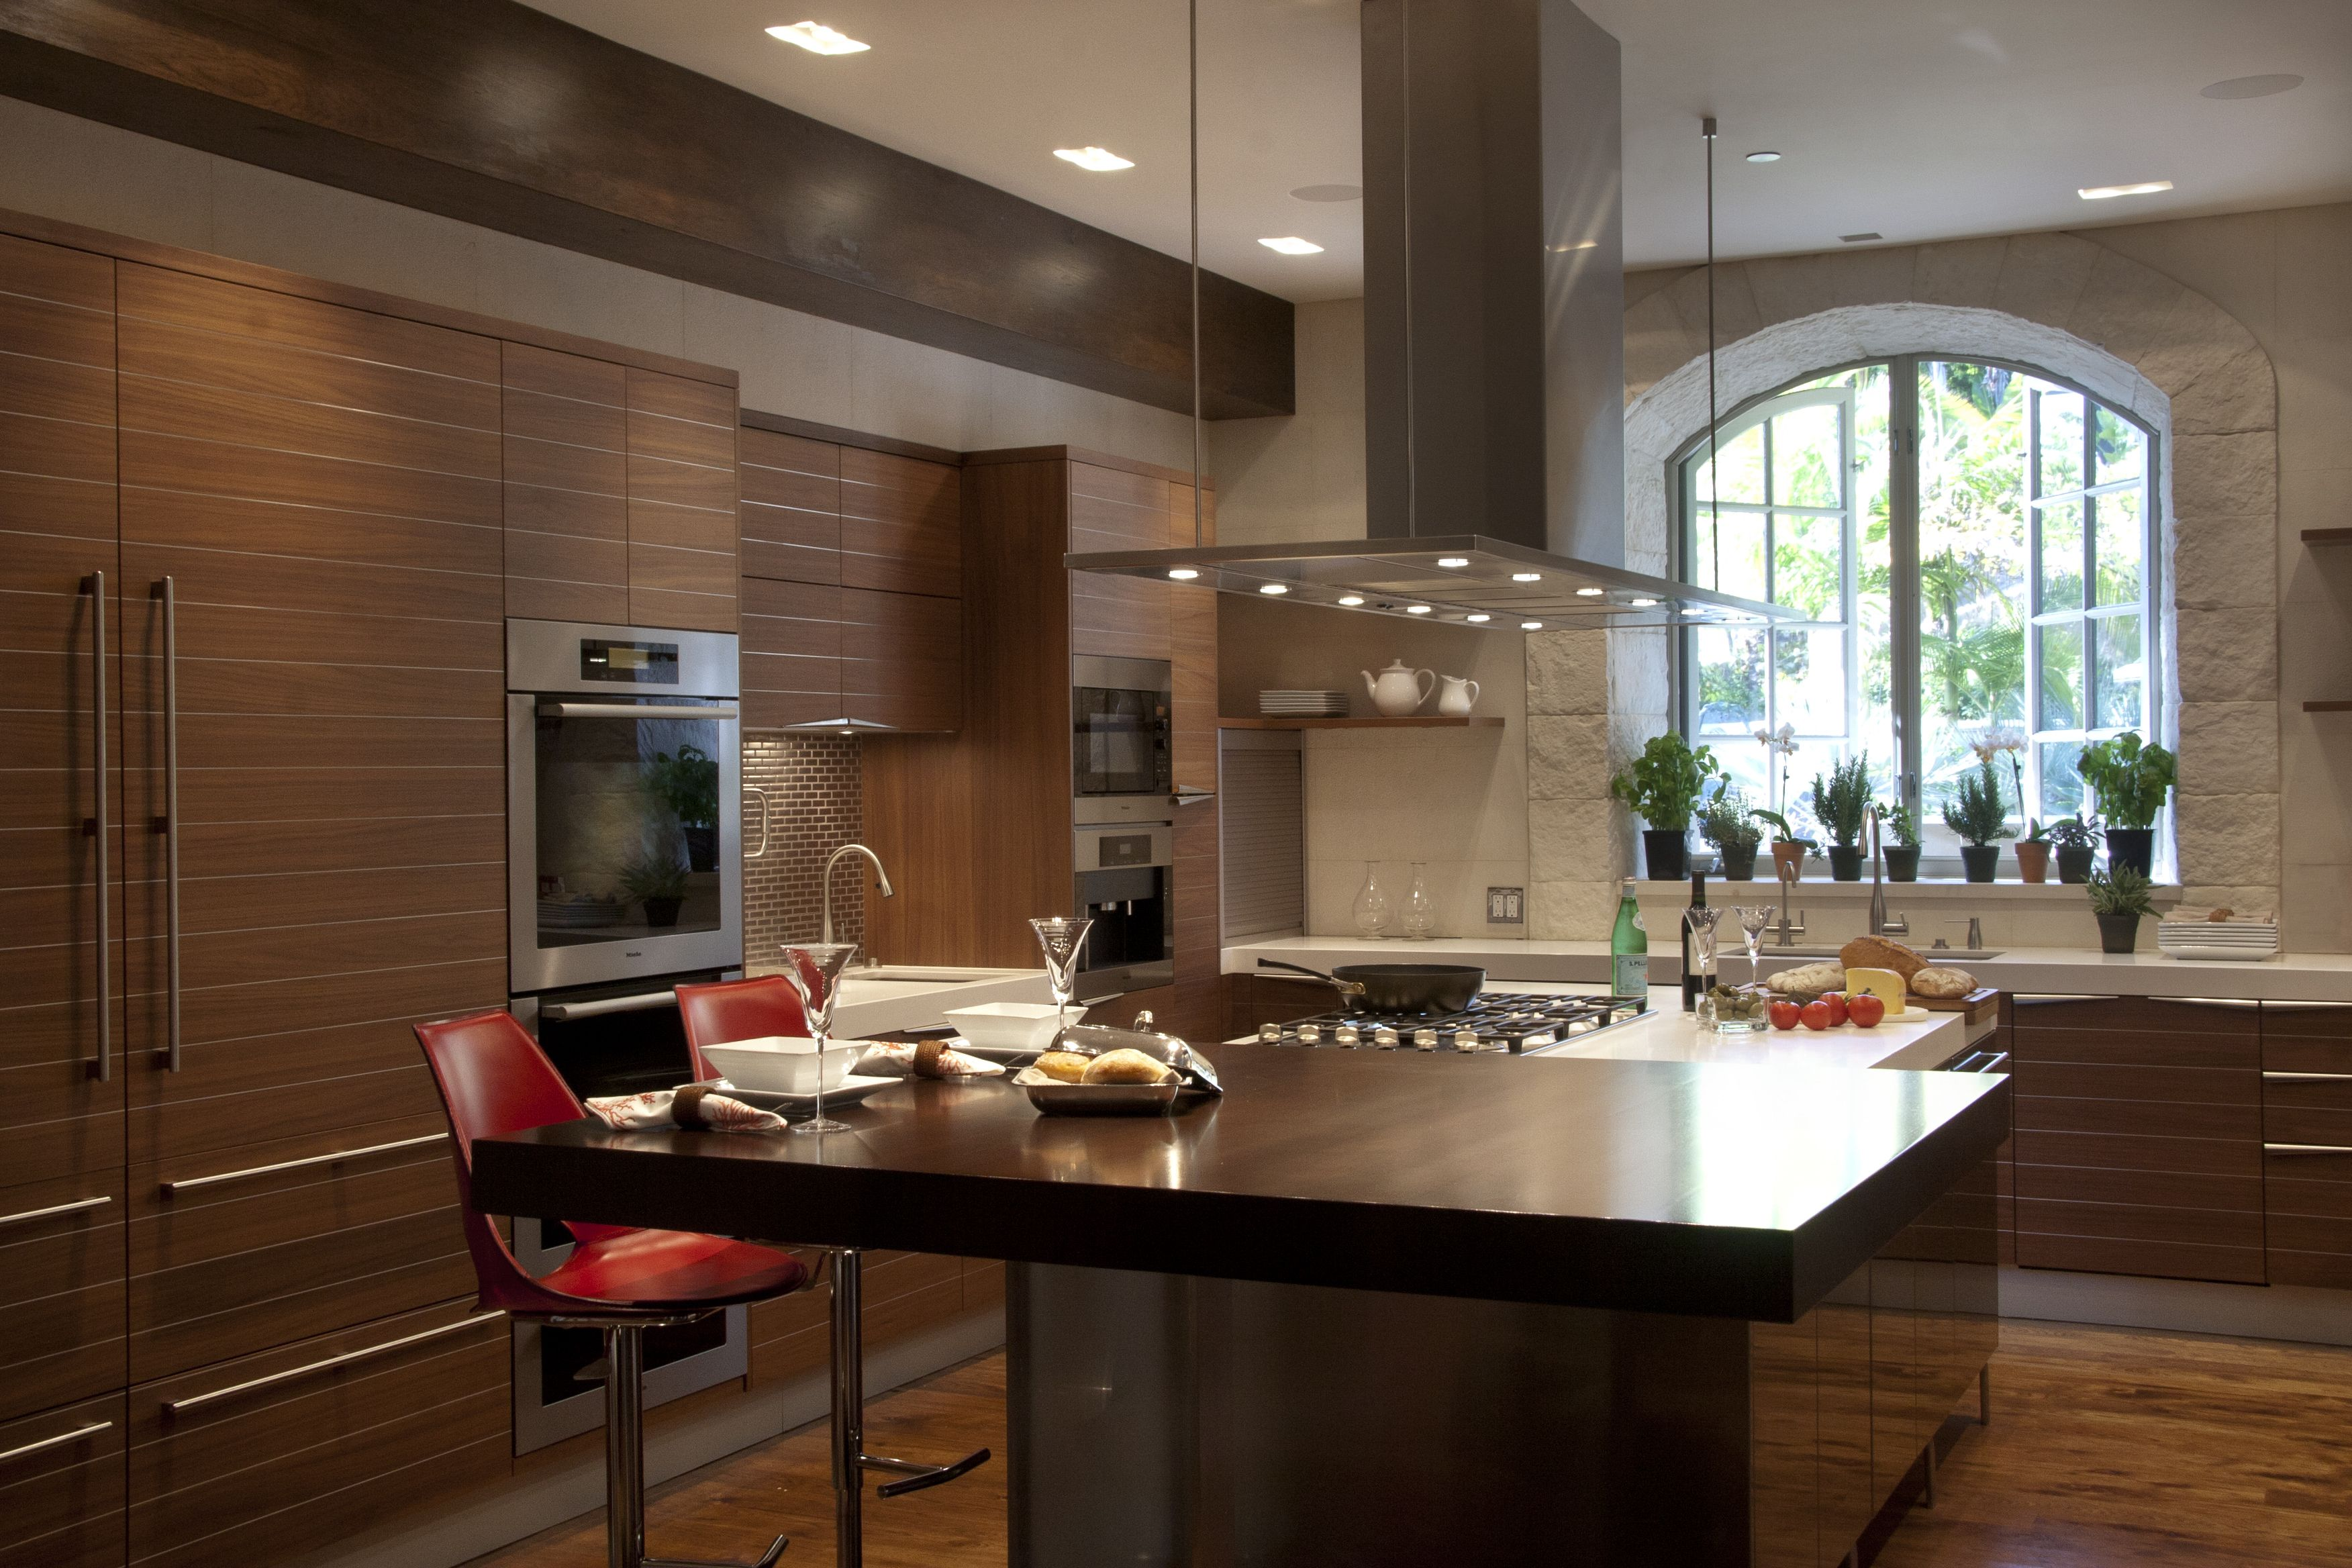 Time kitchen by Snaidero USA Los Angeles Wood kitchen with stainless ...